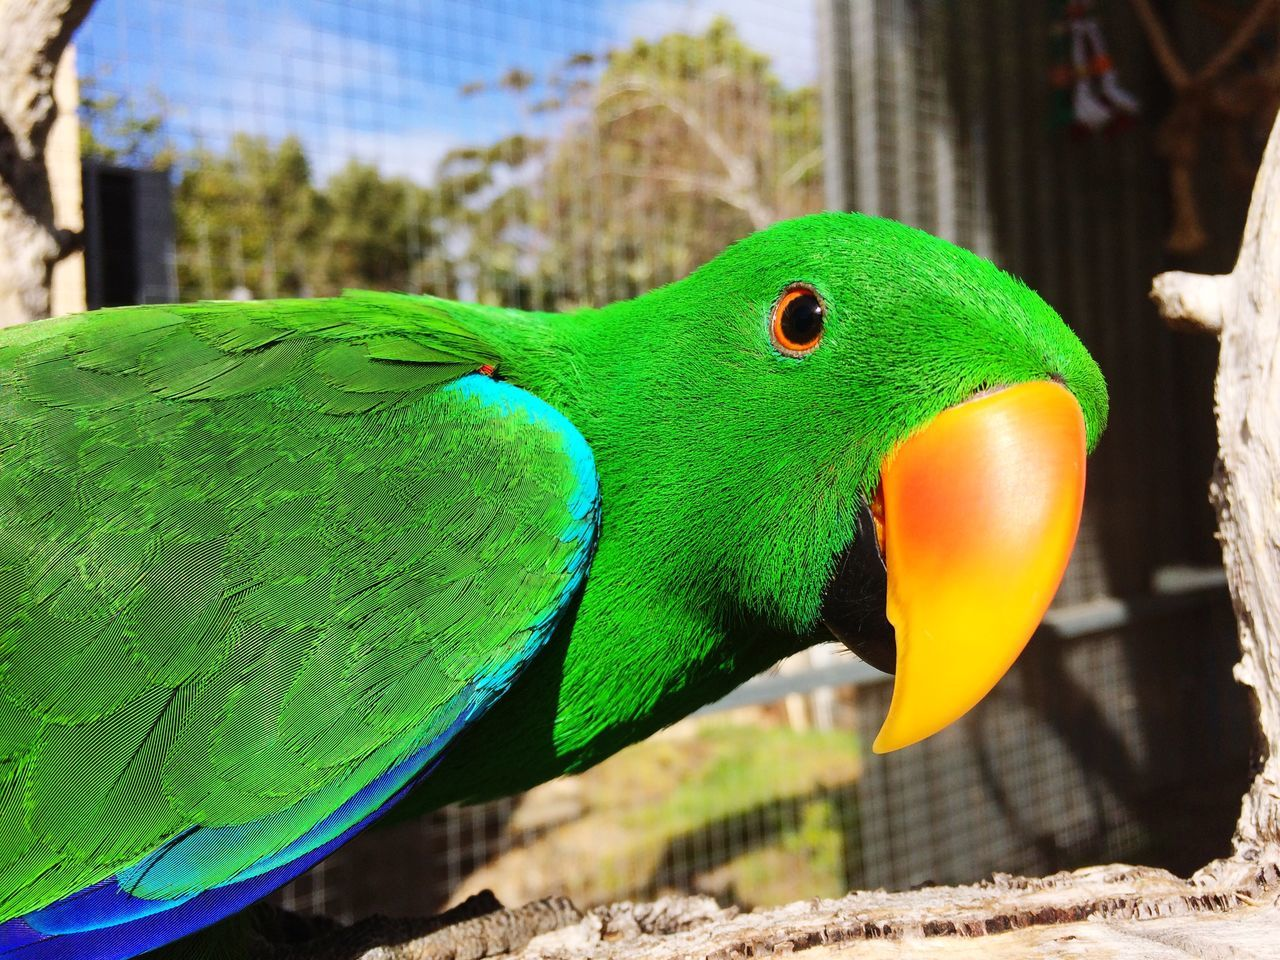 Jellybean_the_Eclectus Bird Photography Birds Eclectus Male Eclectus Green Green Green!  Bright_and_bold